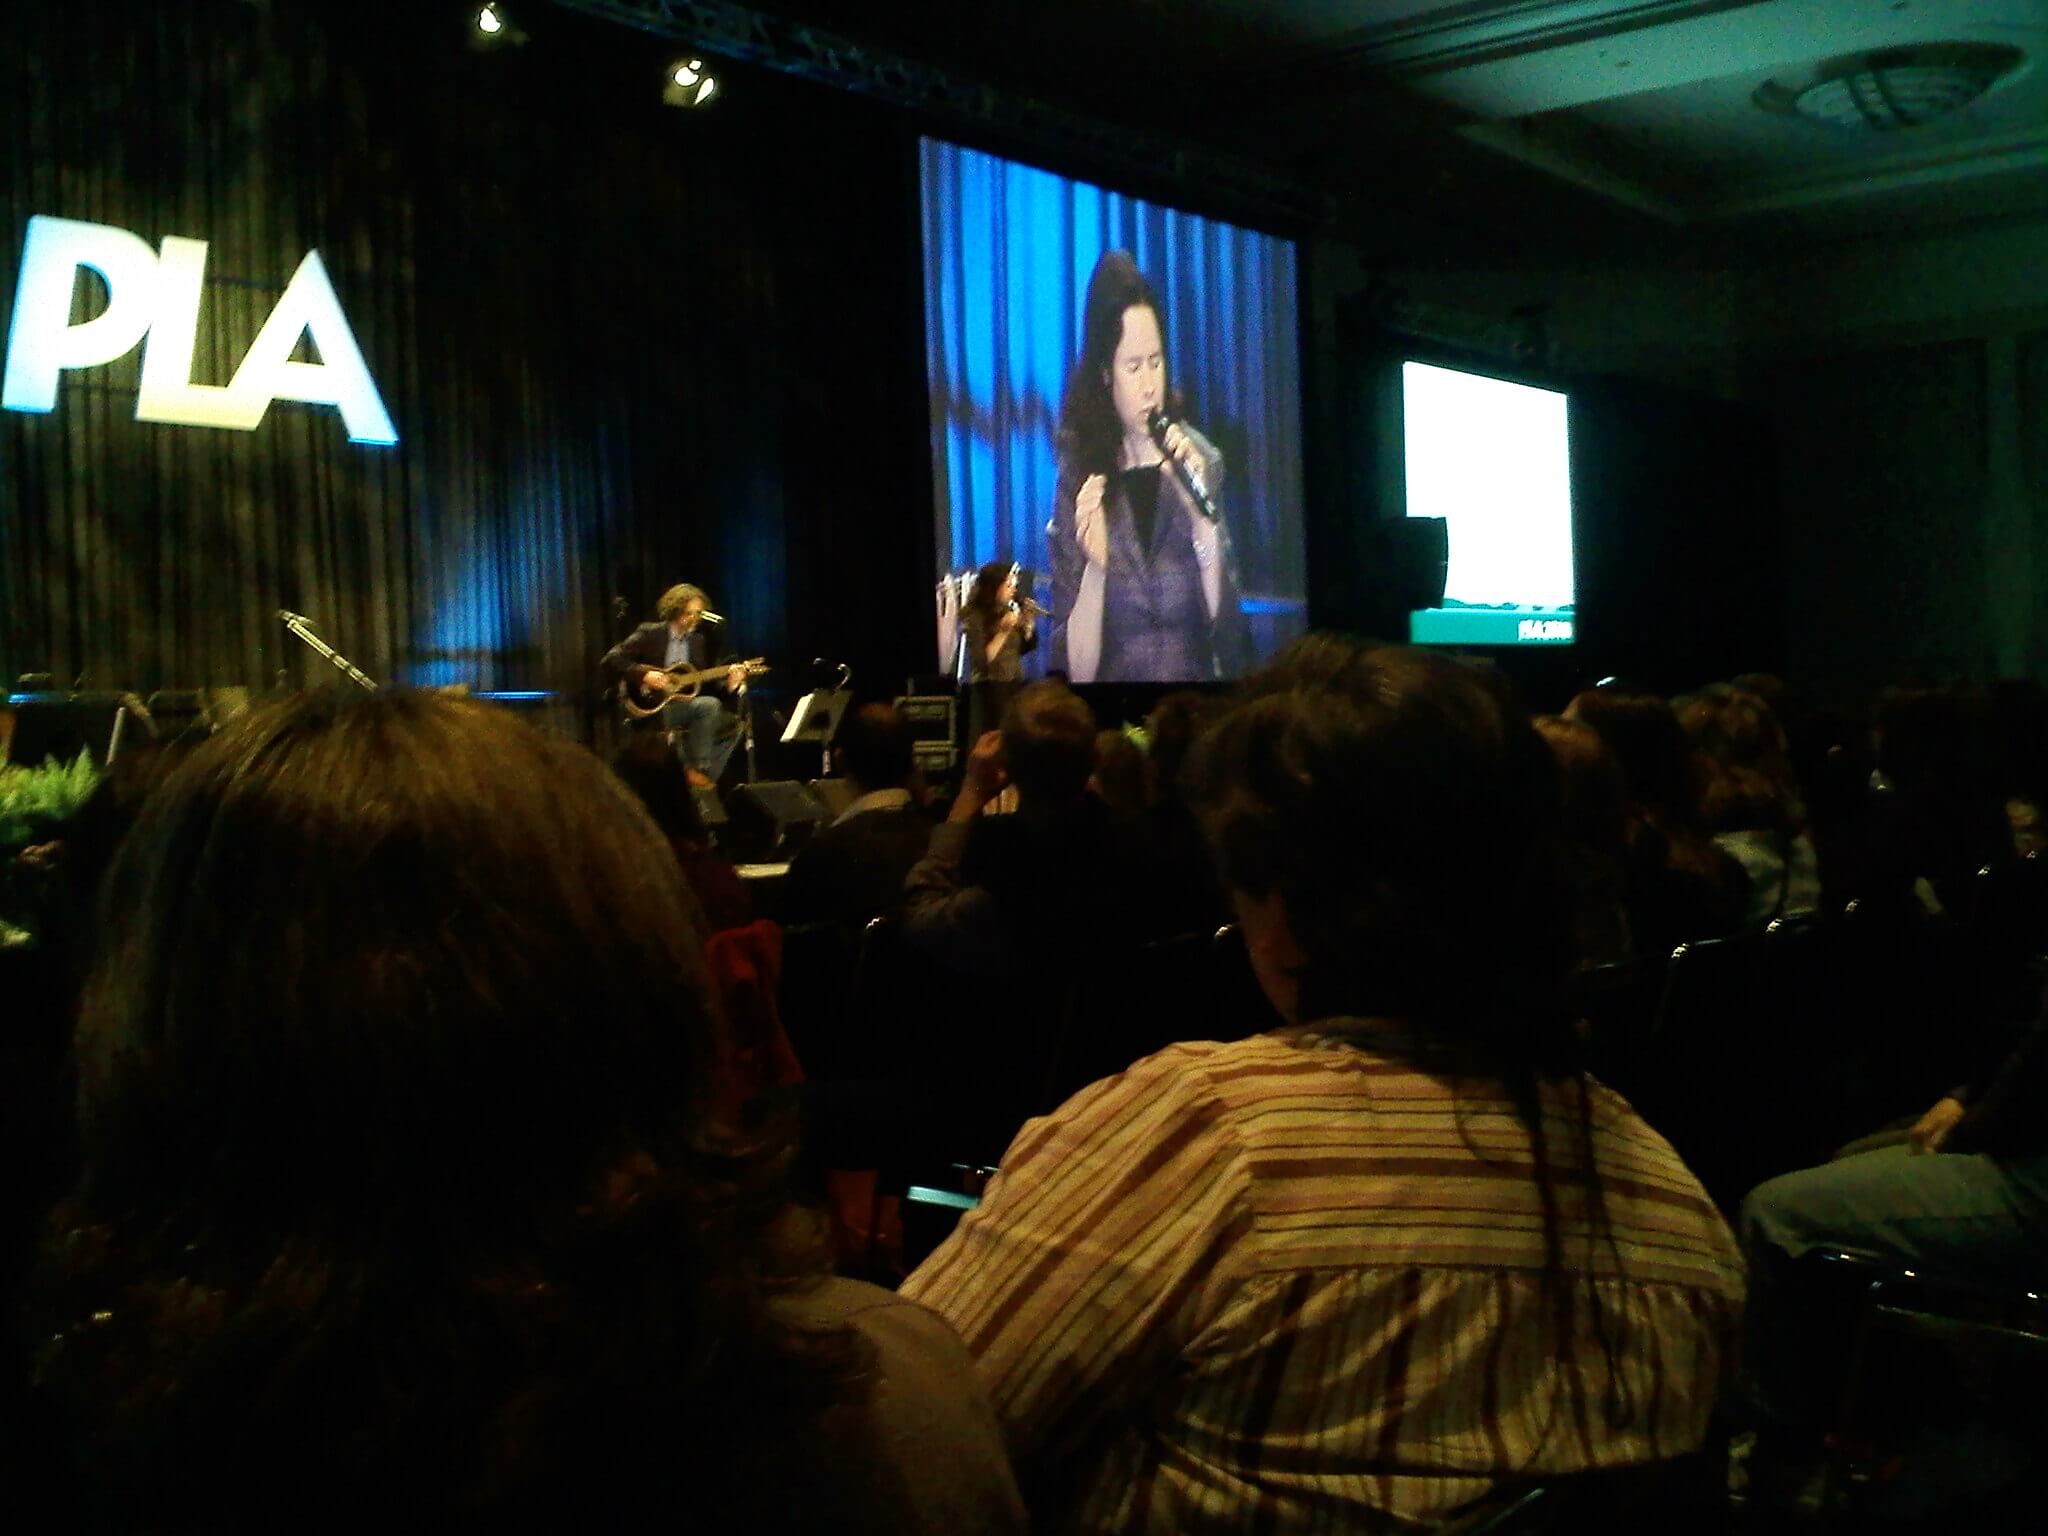 Natalie Merchant sings at the PLA 2010 conference in Portland, OR